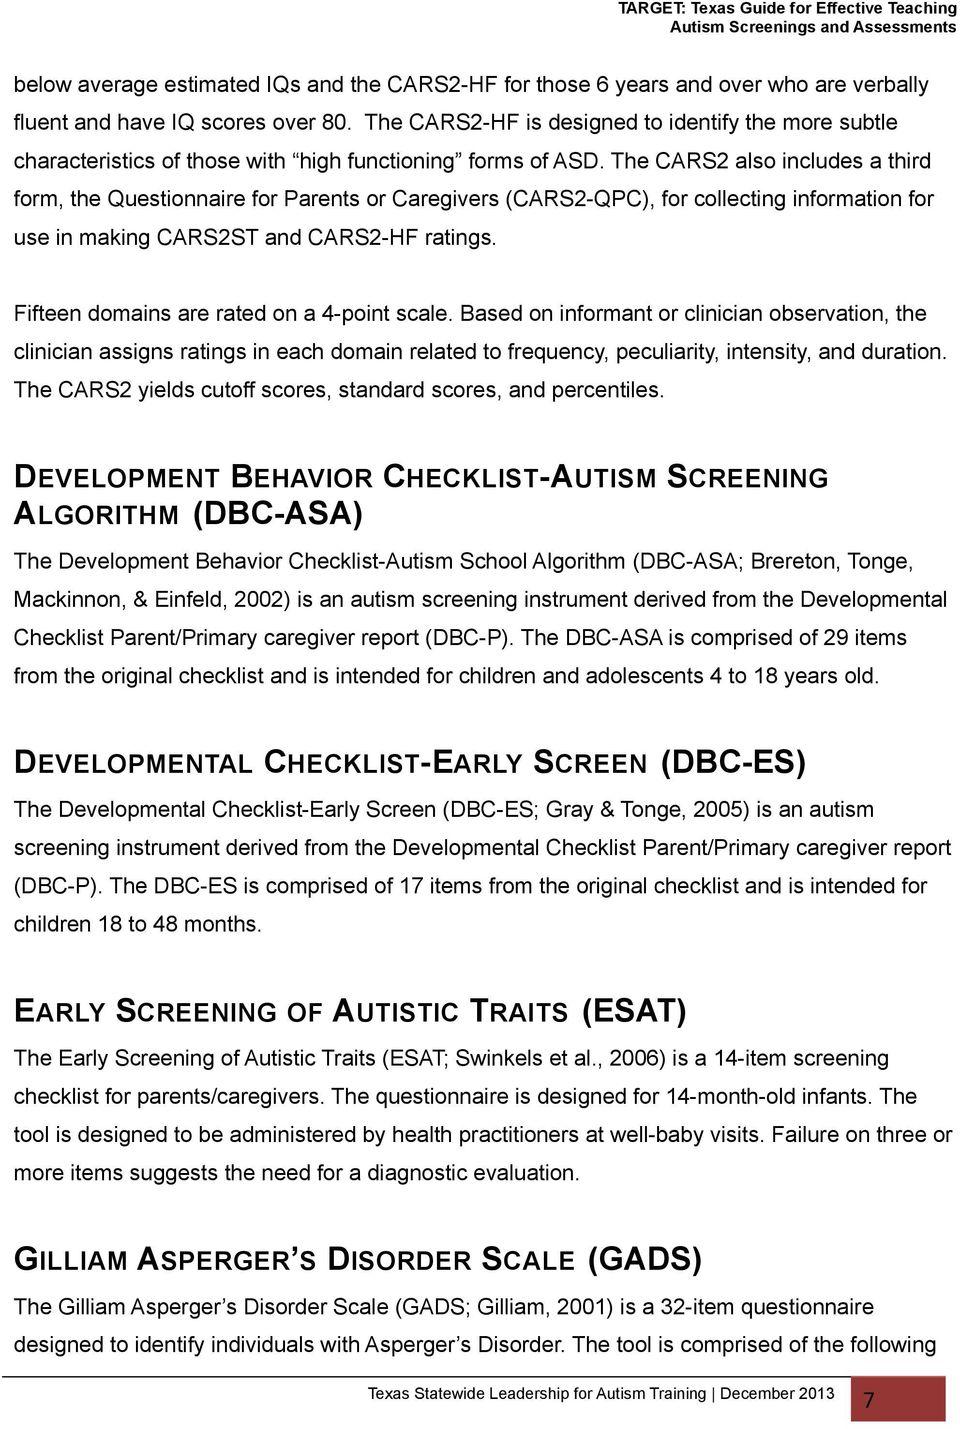 AUTISM SCREENINGS AND ASSESSMENTS - PDF